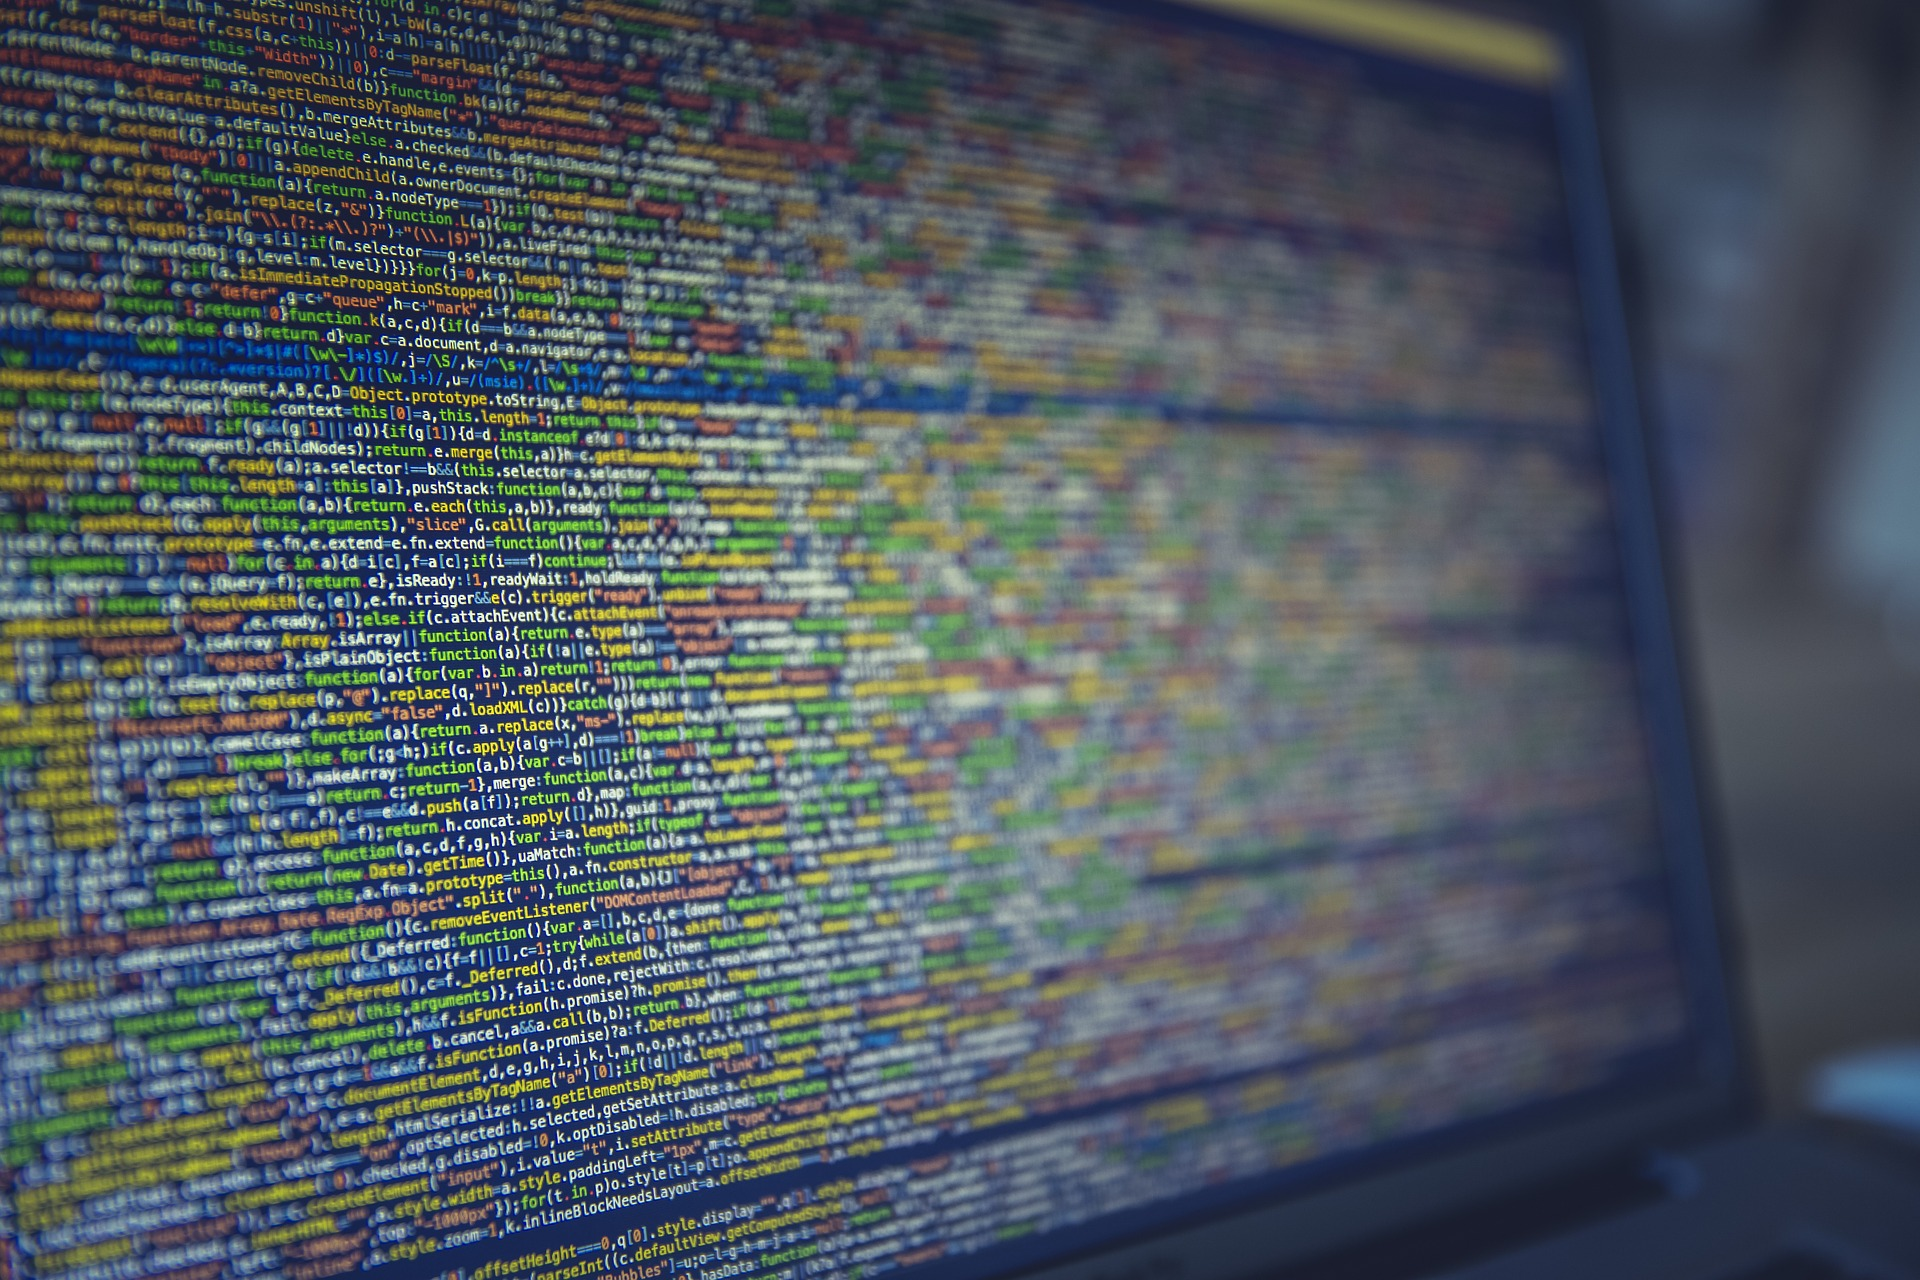 Hunting Down The Mythical High-Quality Code